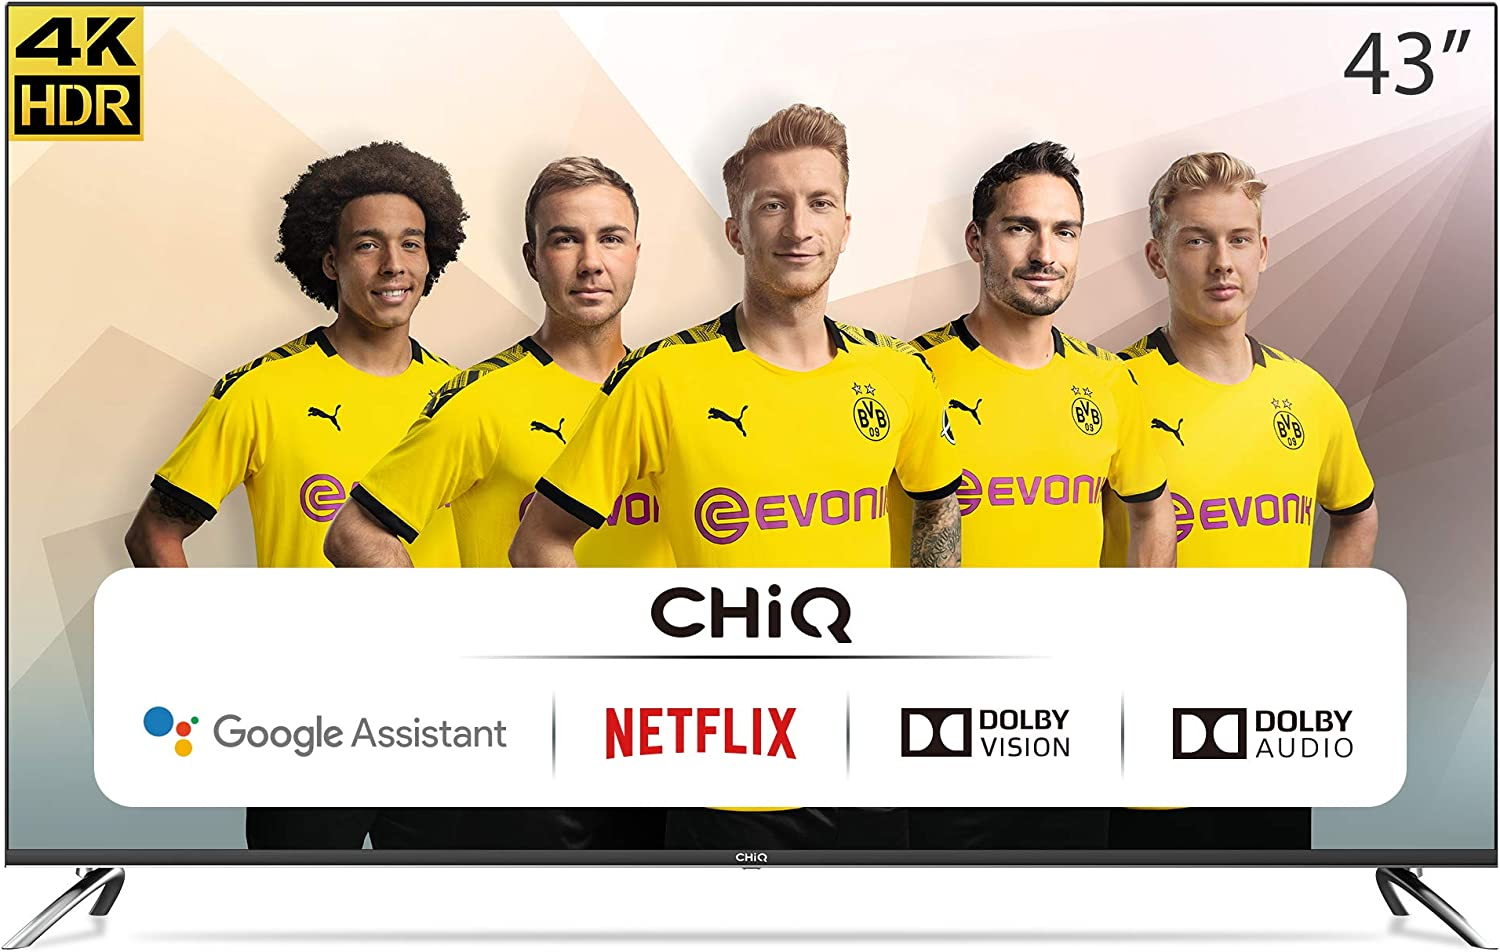 CHiQ Televisor Smart TV LED 43 Pulgadas, 4K UHD, HDR10/HLG, Android 9.0, WiFi, Bluetooth, 3 x HDMI, 2 x USB: Amazon.es: Electrónica